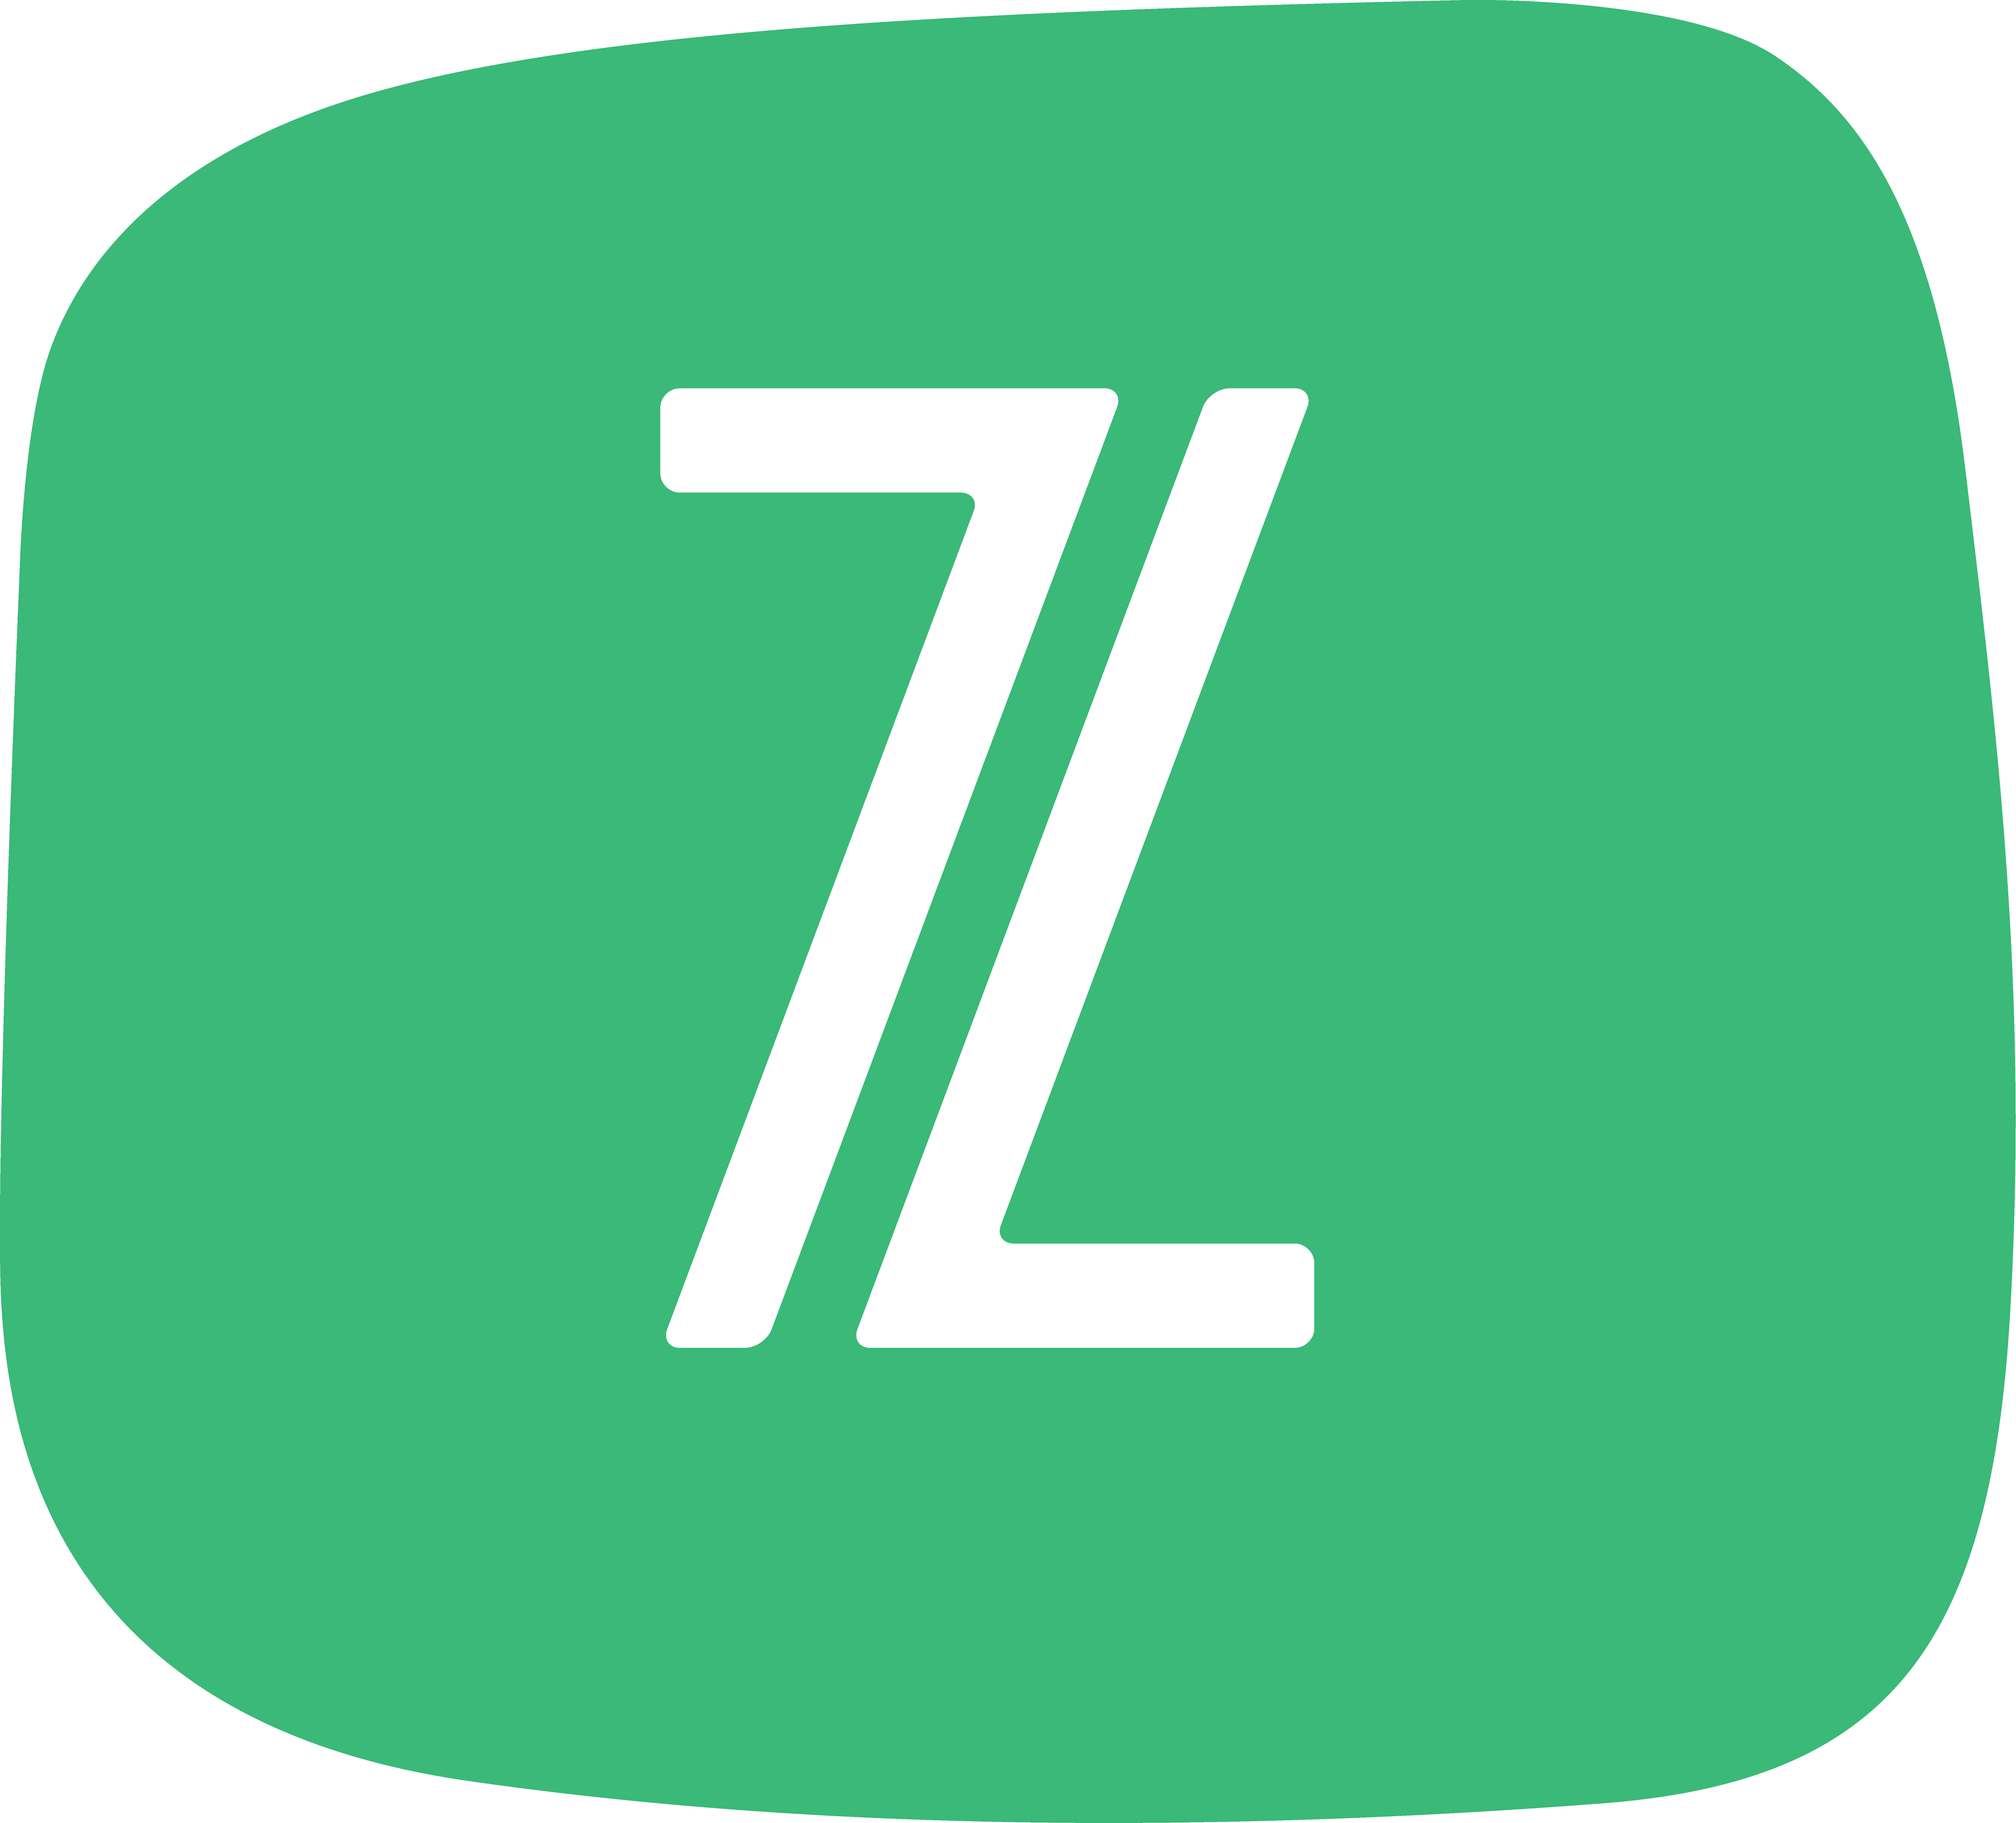 cropped-logo-zuzu-new-2.png